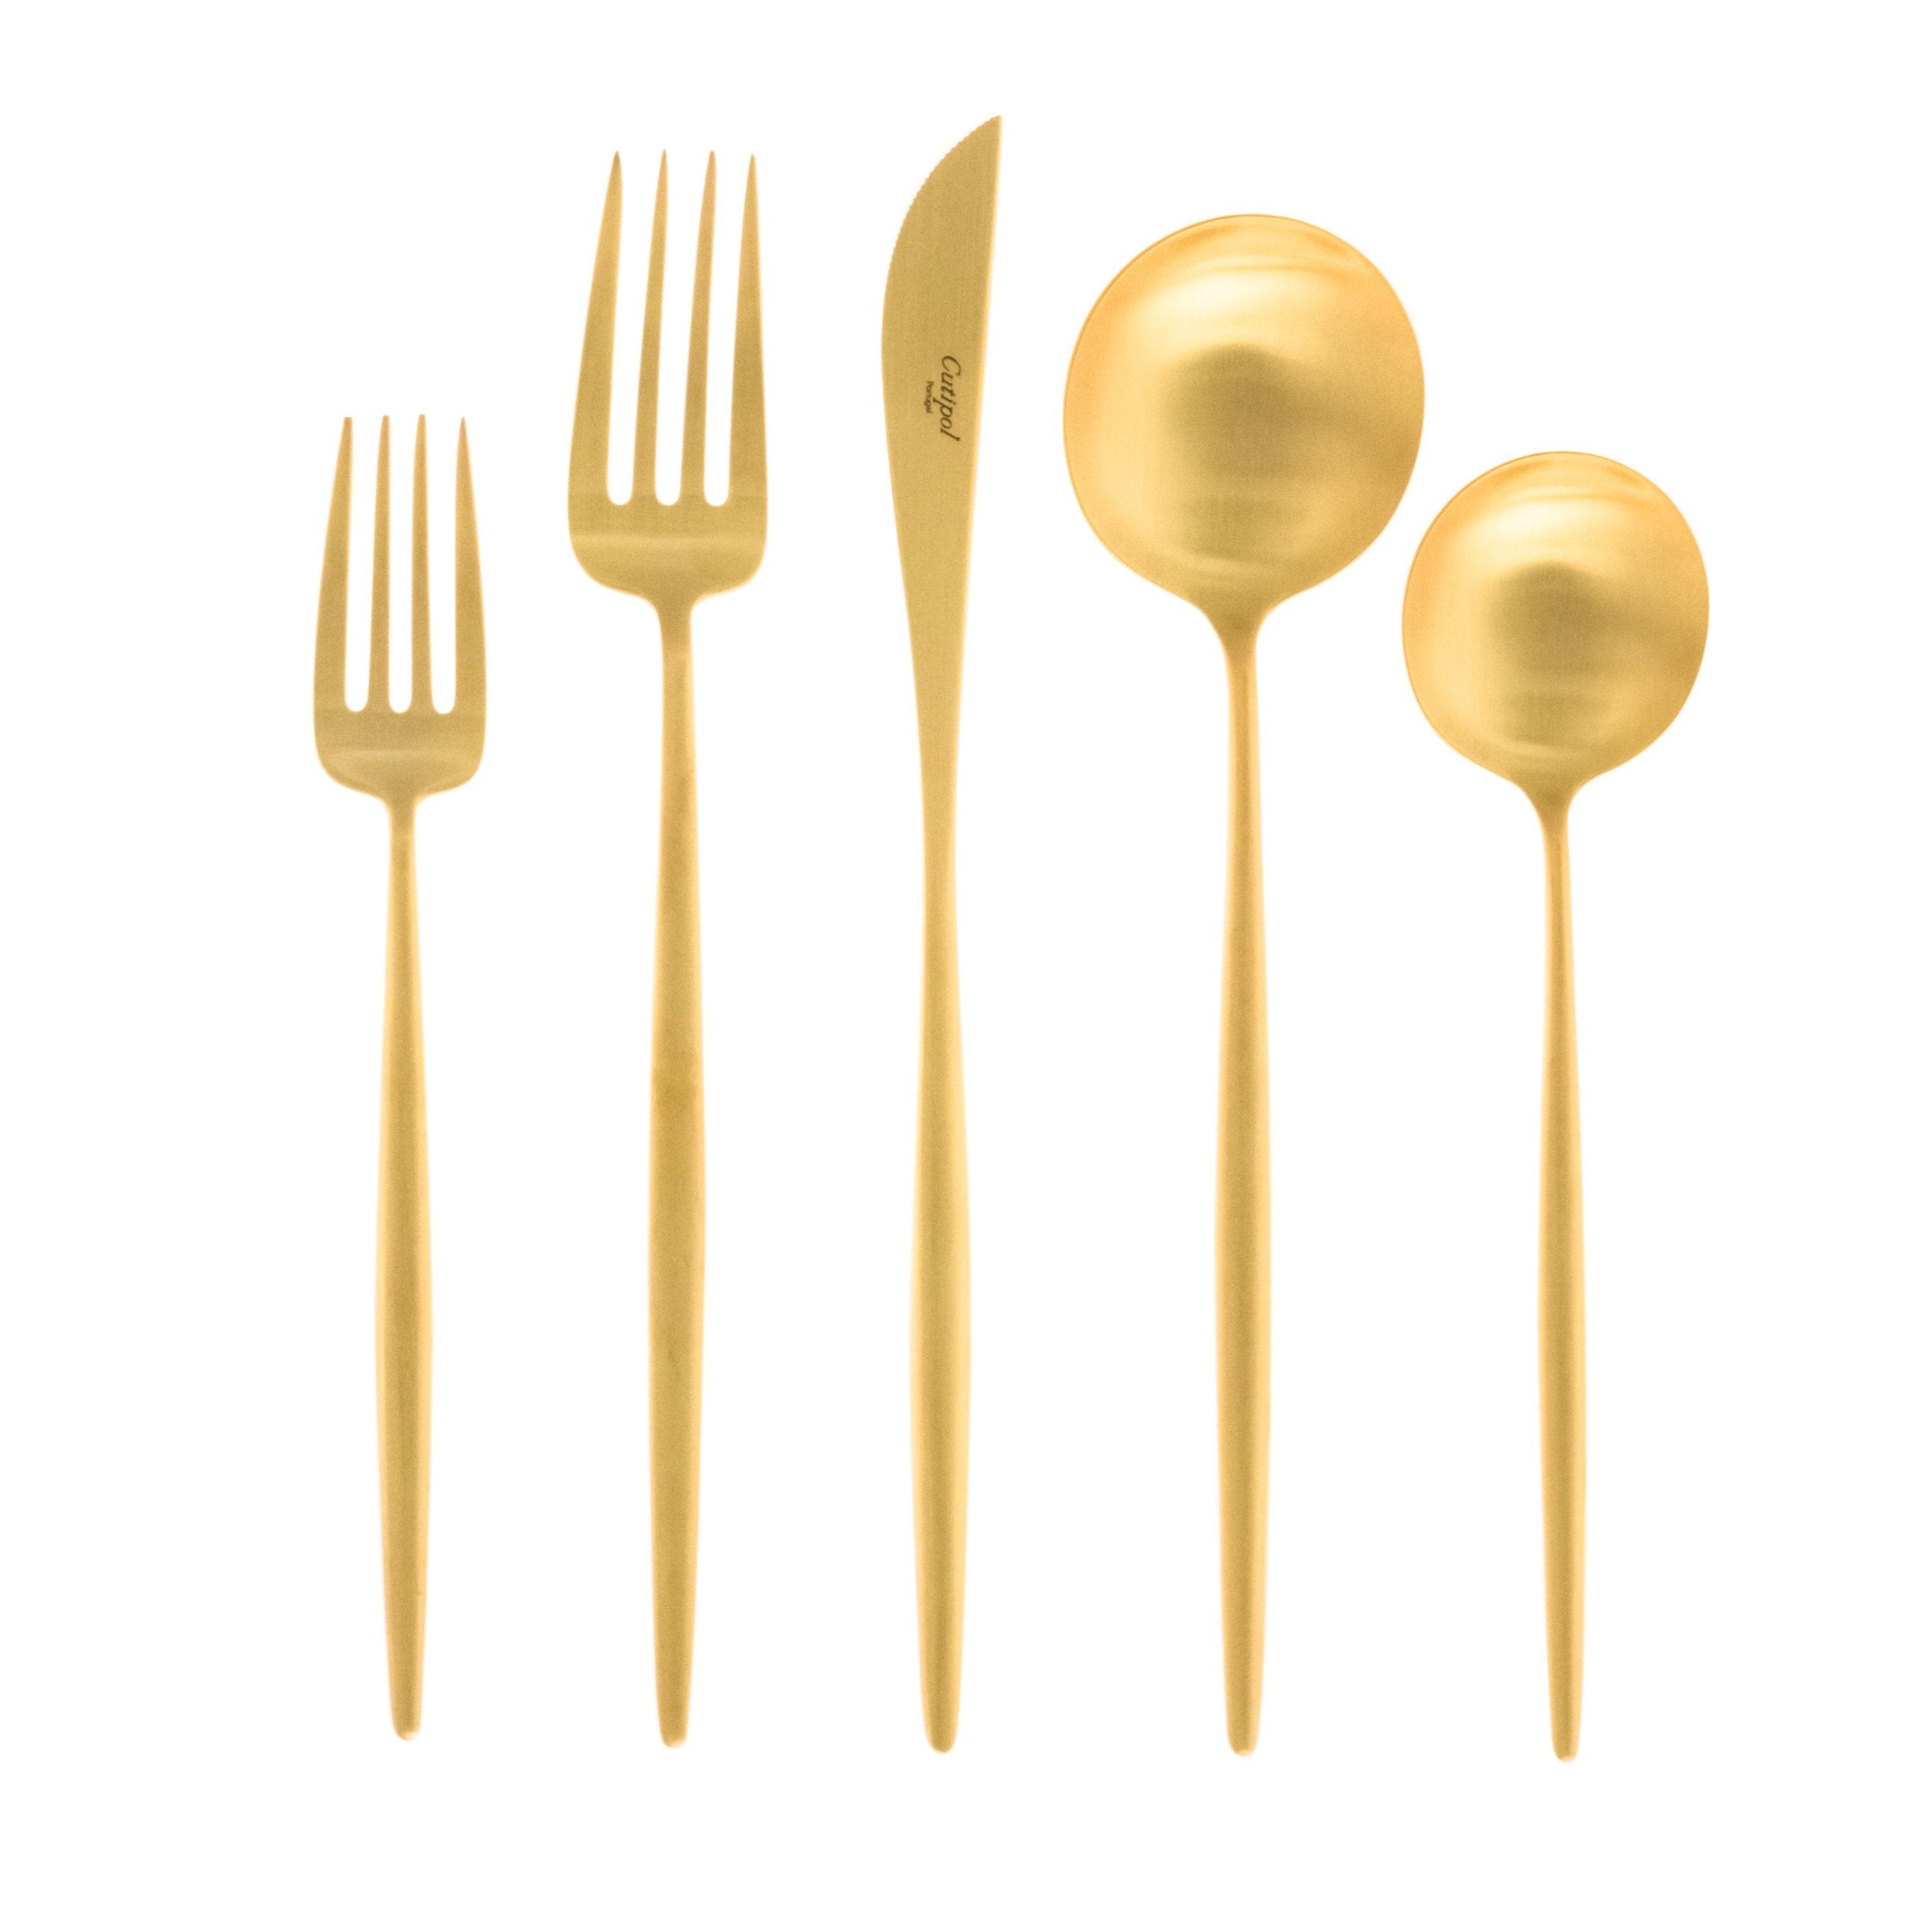 Moon Flatware: Brushed Gold: Single 5-pc Set